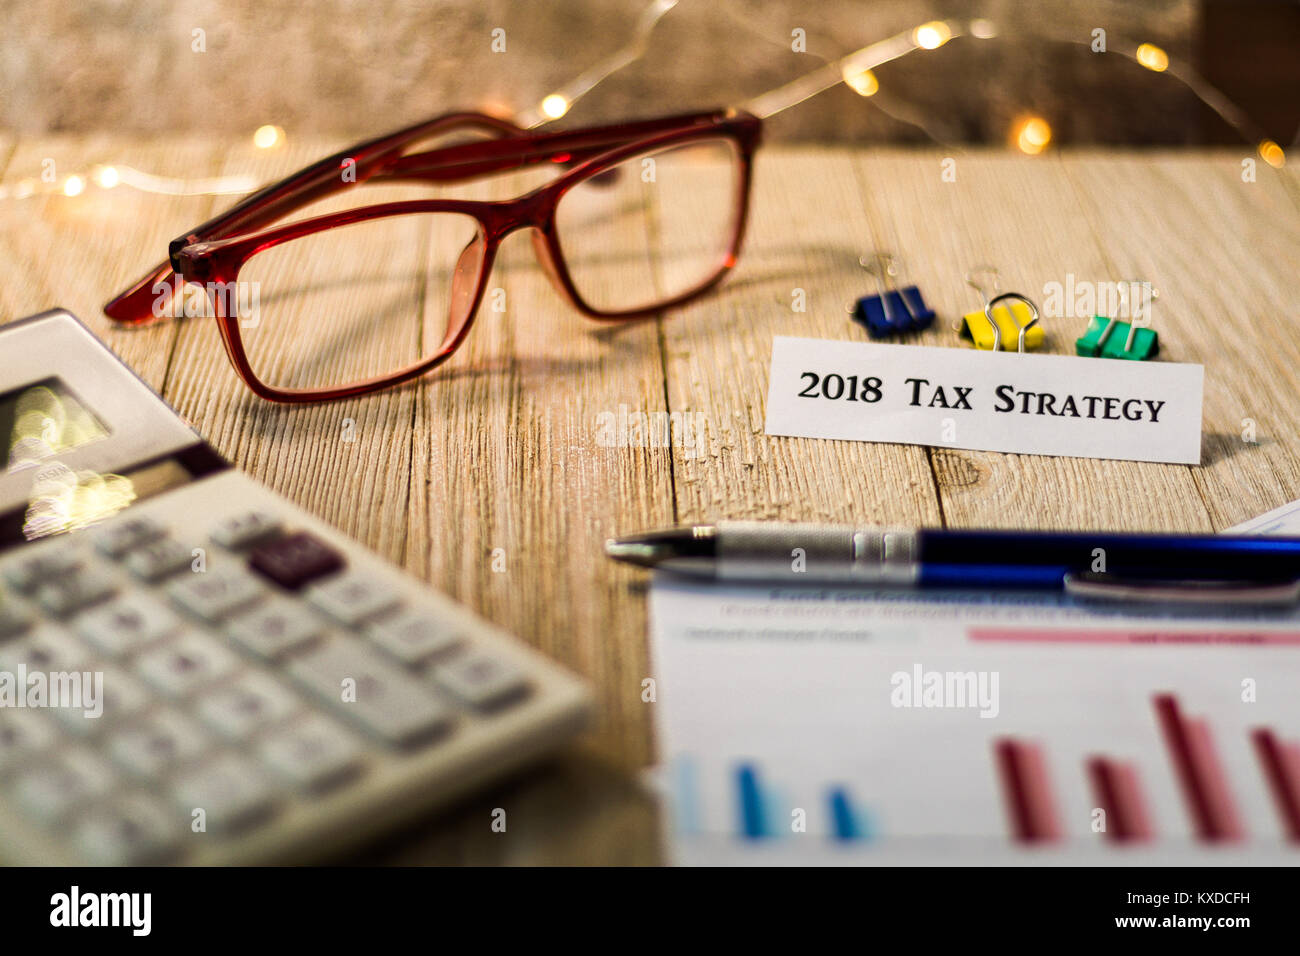 2018 Tax Strategy finance concept with charts and graphs and calculator on wooden board - Stock Image